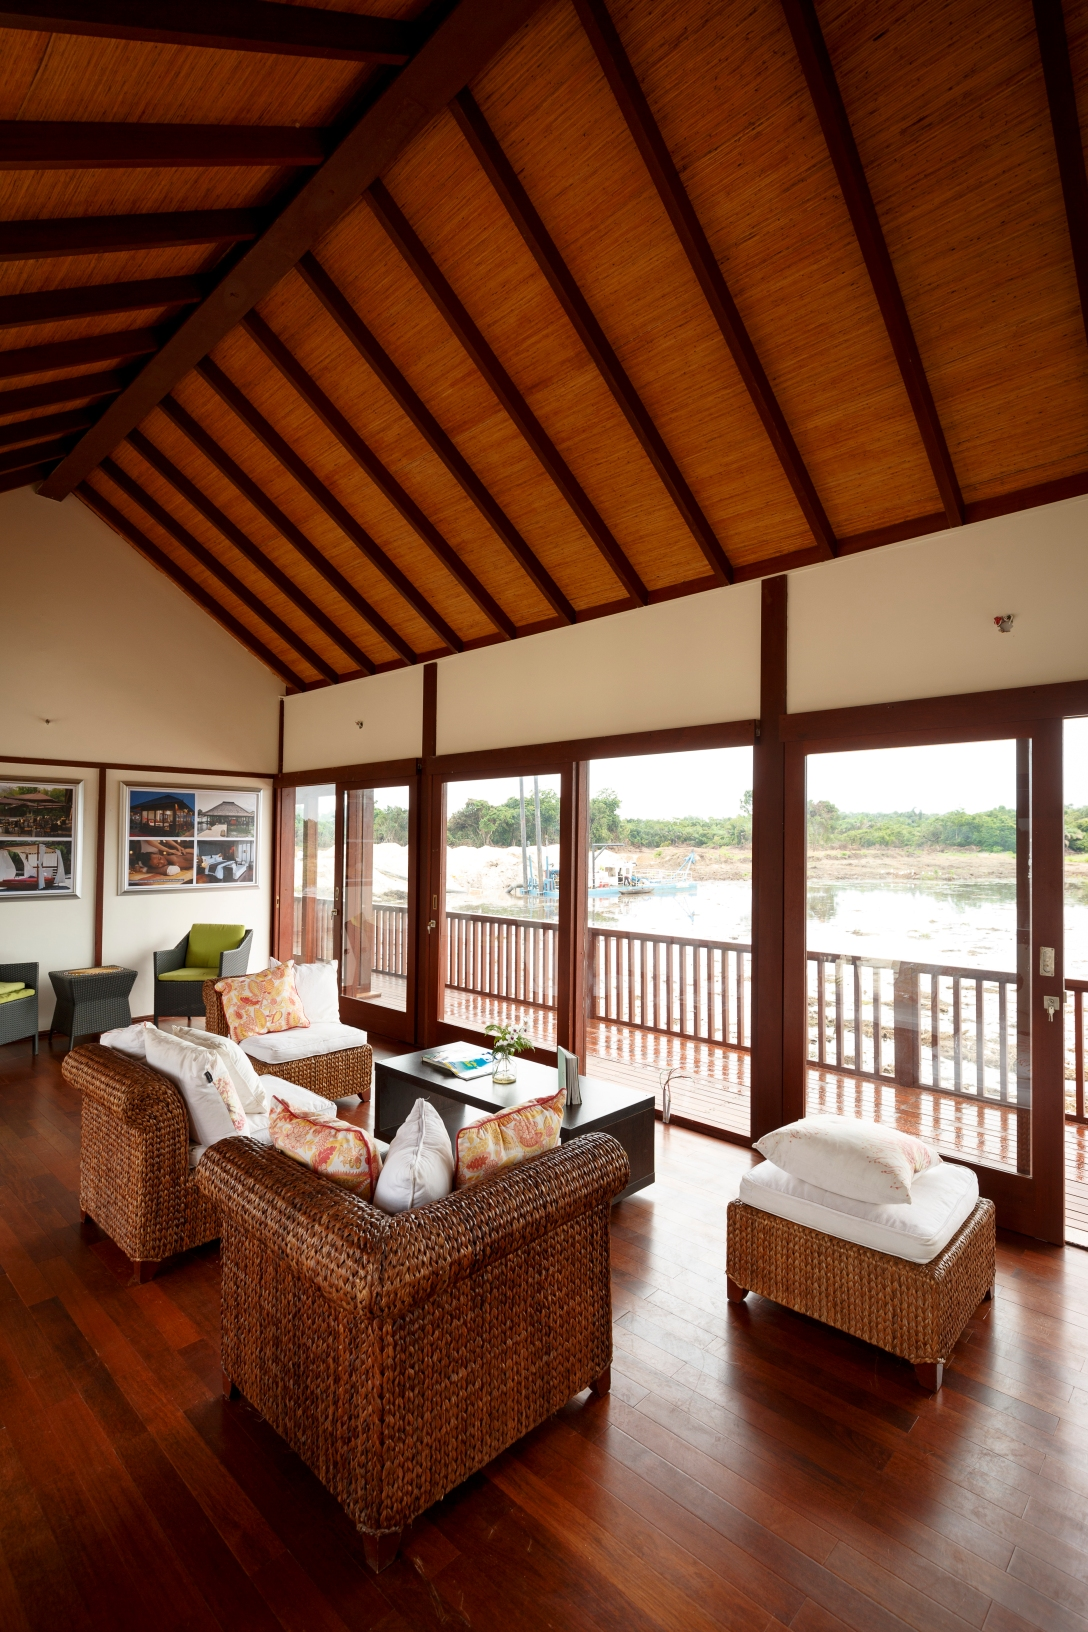 Interior view from one of the Cottages in the Hospitality Resort at Lakowe Lakes